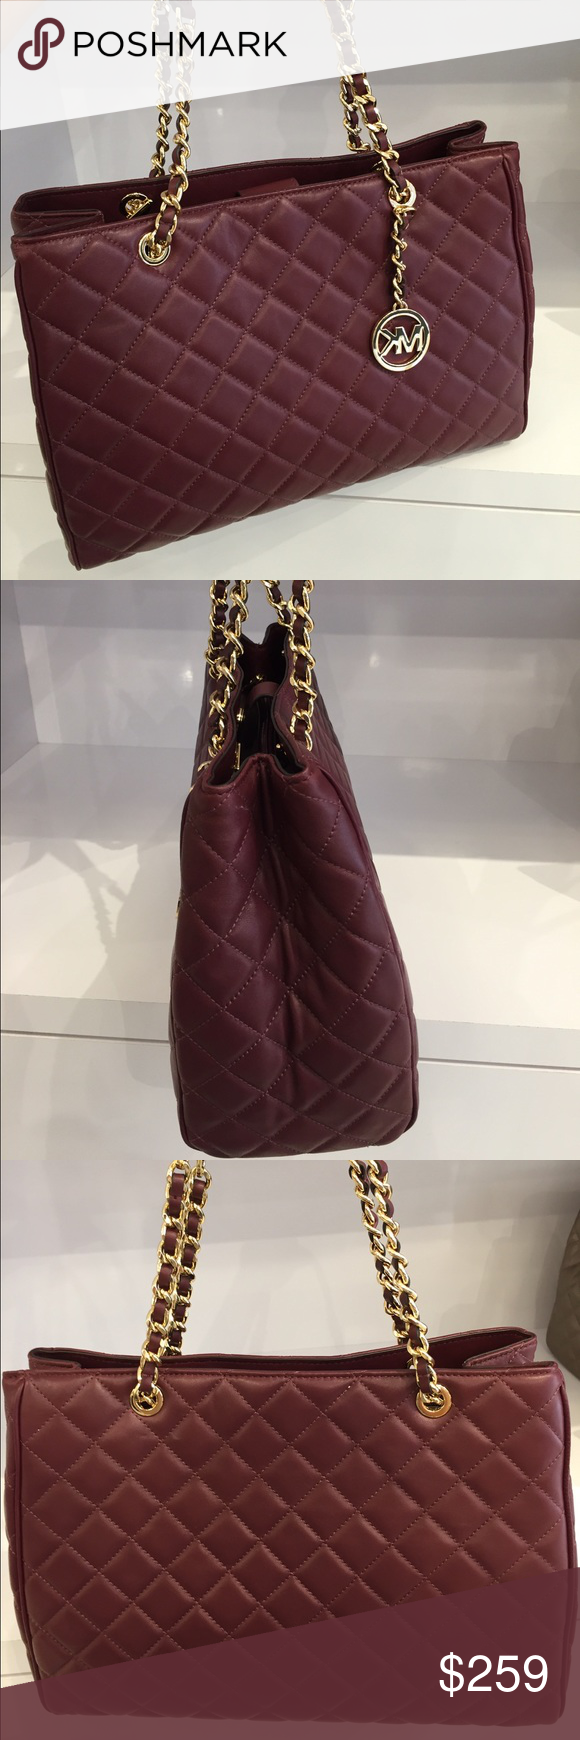 ffbaf2d57bed Michael Kors Susannah Quilted Leather Large Tote Michael Kors Susannah  Quilted Leather Large Tote Burgundy Carry